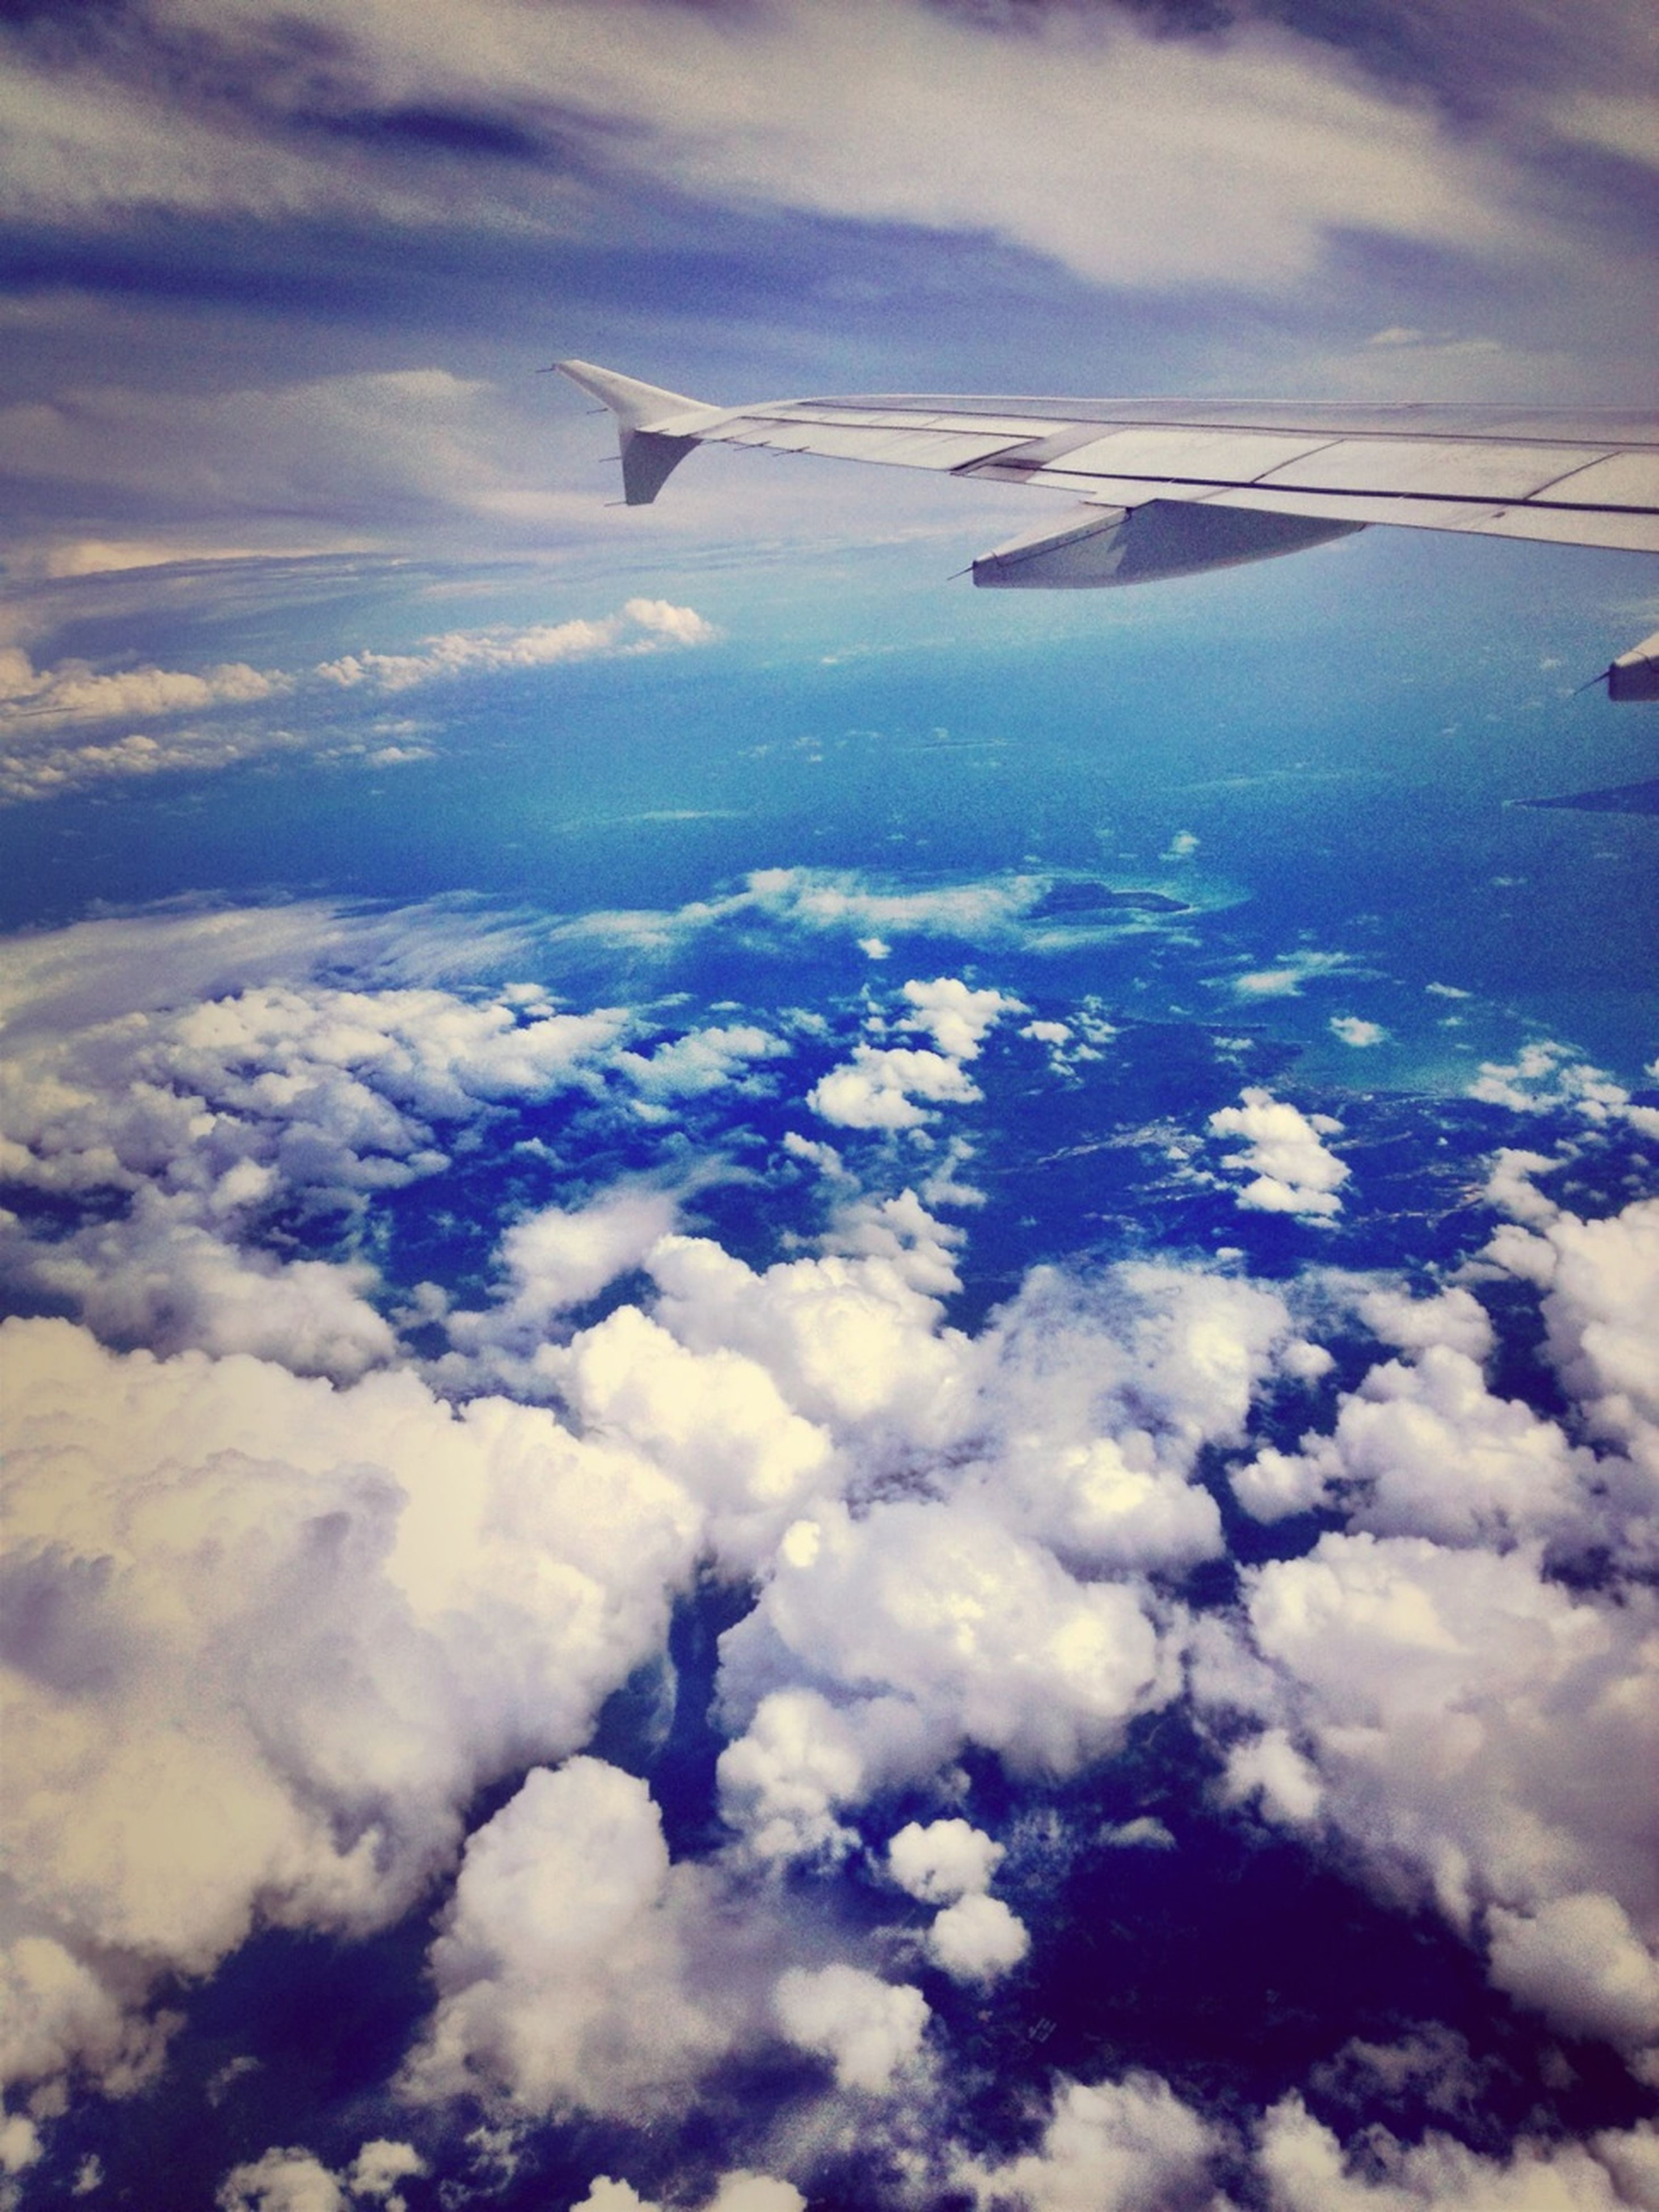 airplane, flying, air vehicle, aircraft wing, aerial view, transportation, sky, mode of transport, cloud - sky, scenics, cloudscape, beauty in nature, mid-air, part of, public transportation, nature, travel, journey, cloud, tranquil scene